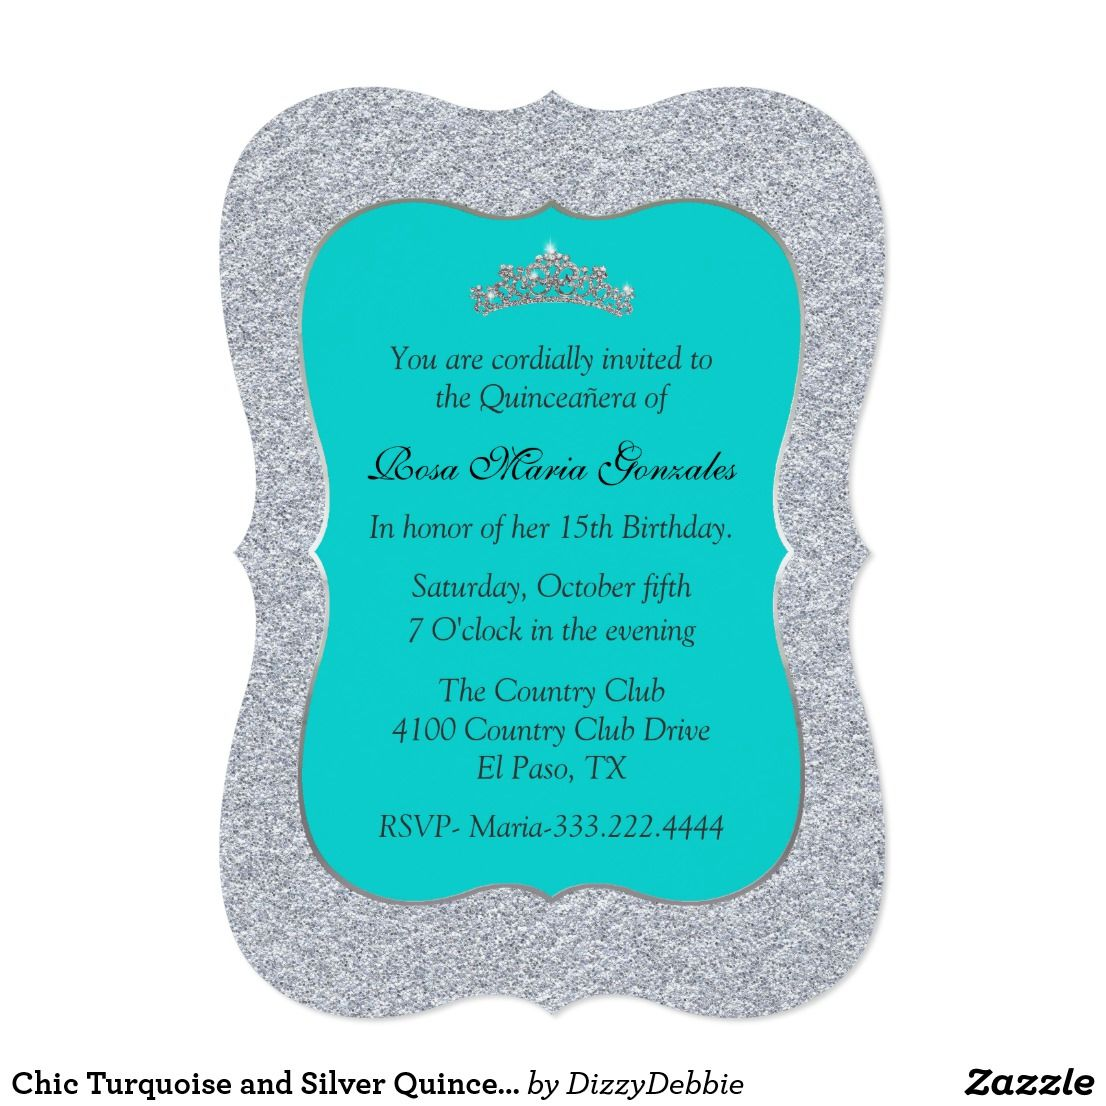 Chic Turquoise And Silver Quinceanera Invitation Glitzy